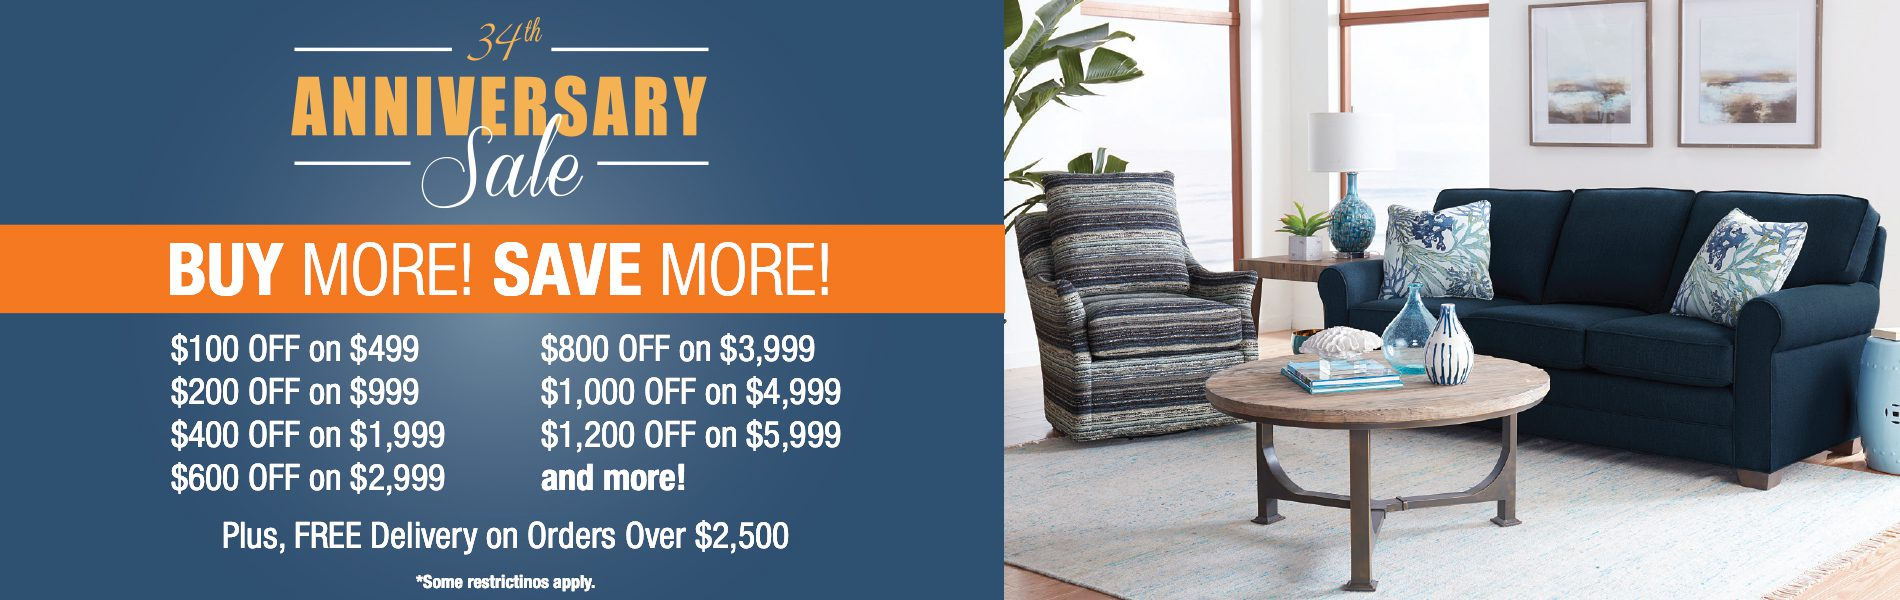 Living Room Anniversary Sale